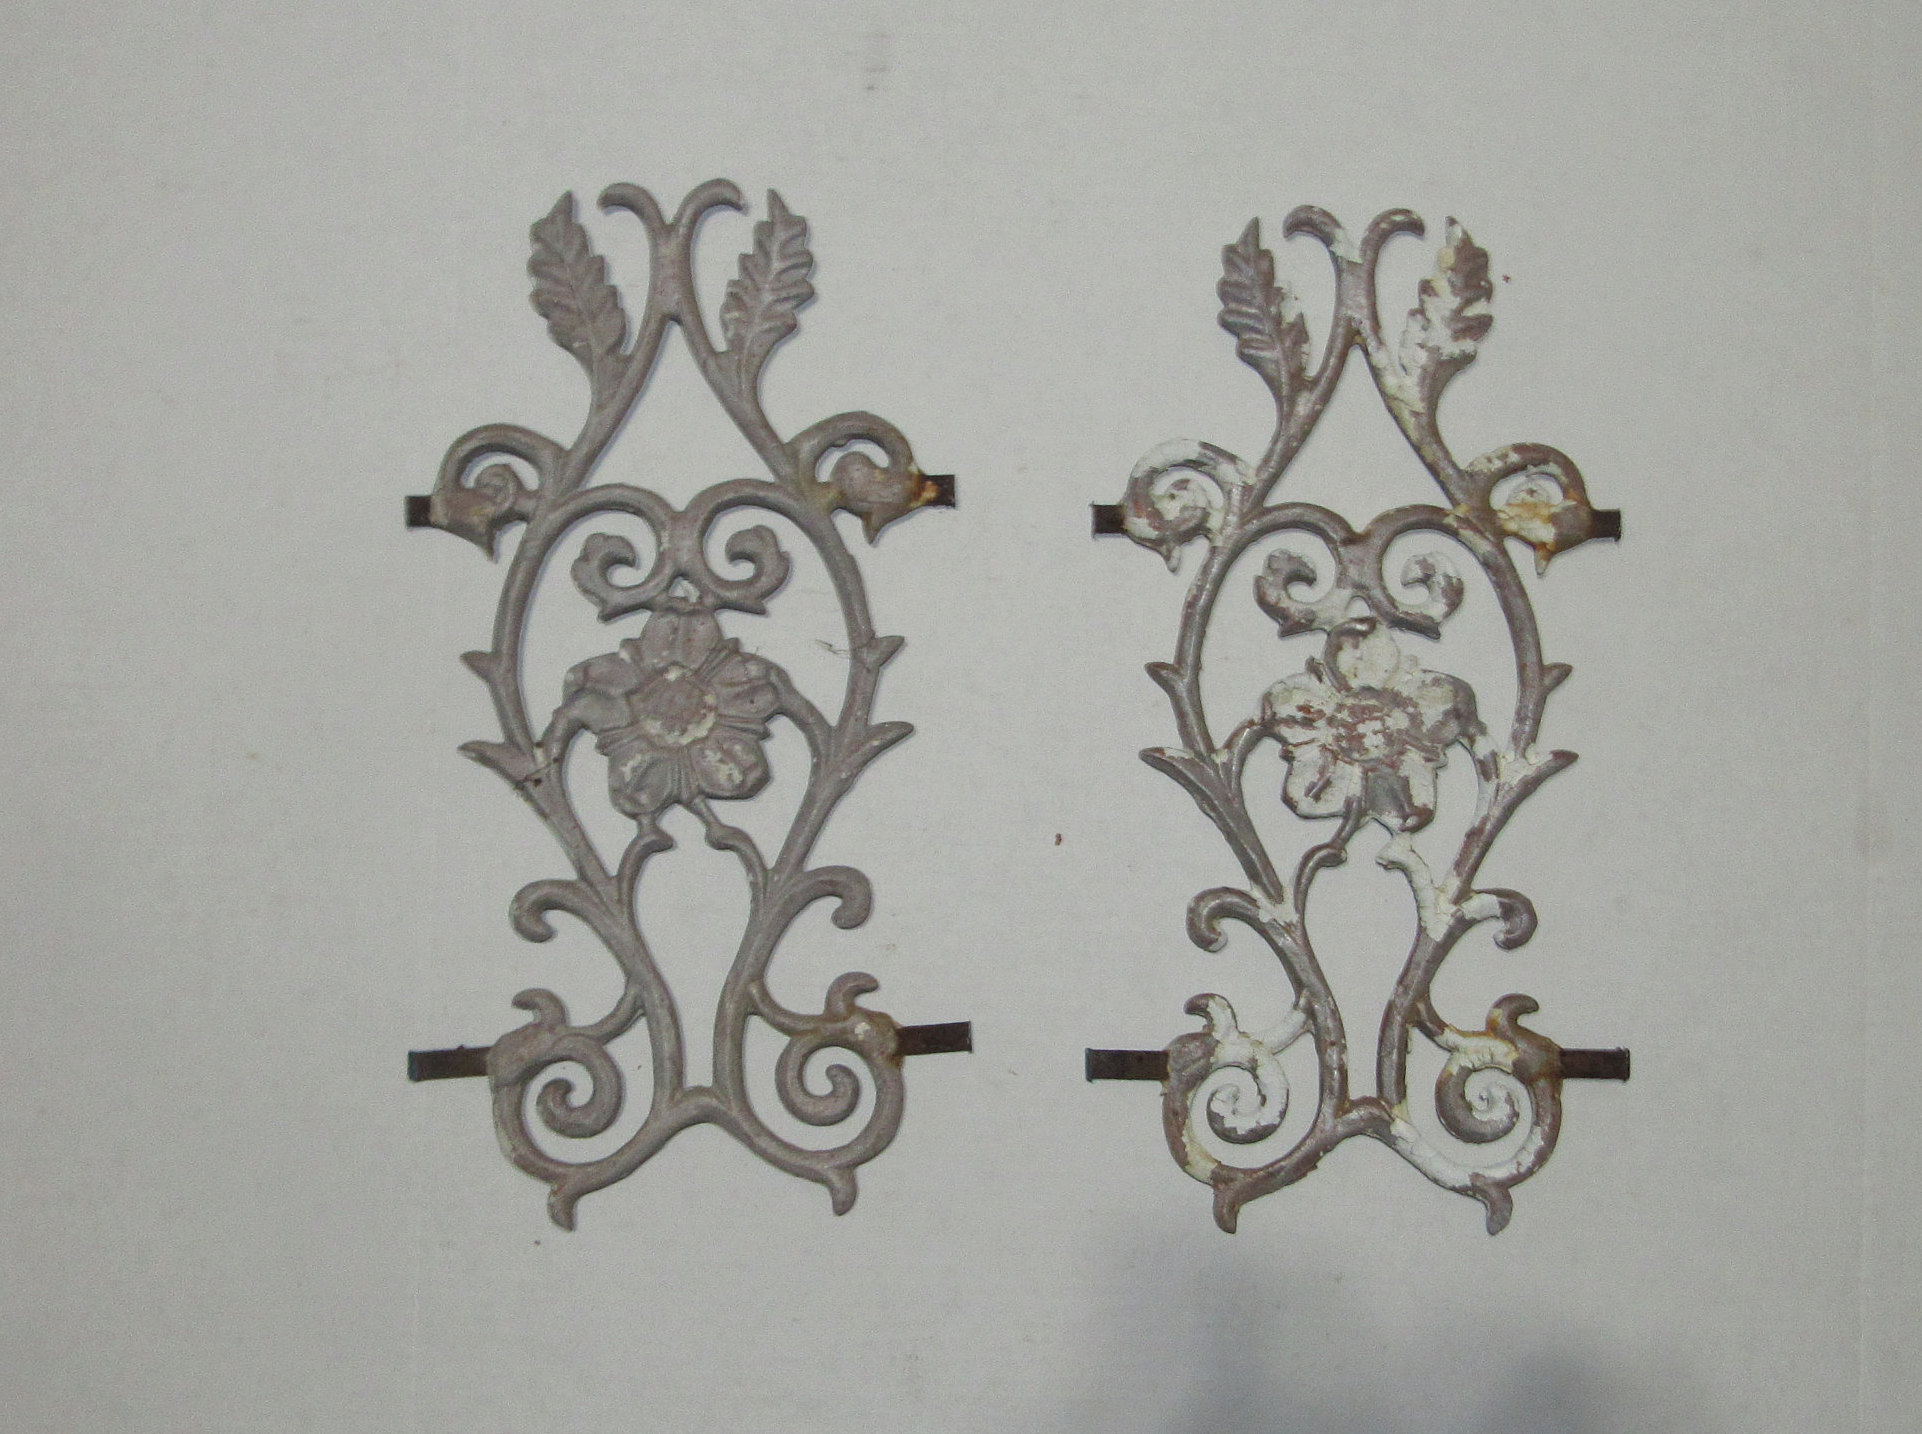 Favorite Ornate Scroll Wall Decor Within 2 Architectural Salvage Pieces Ornate Repurpose Art Decor (View 4 of 20)